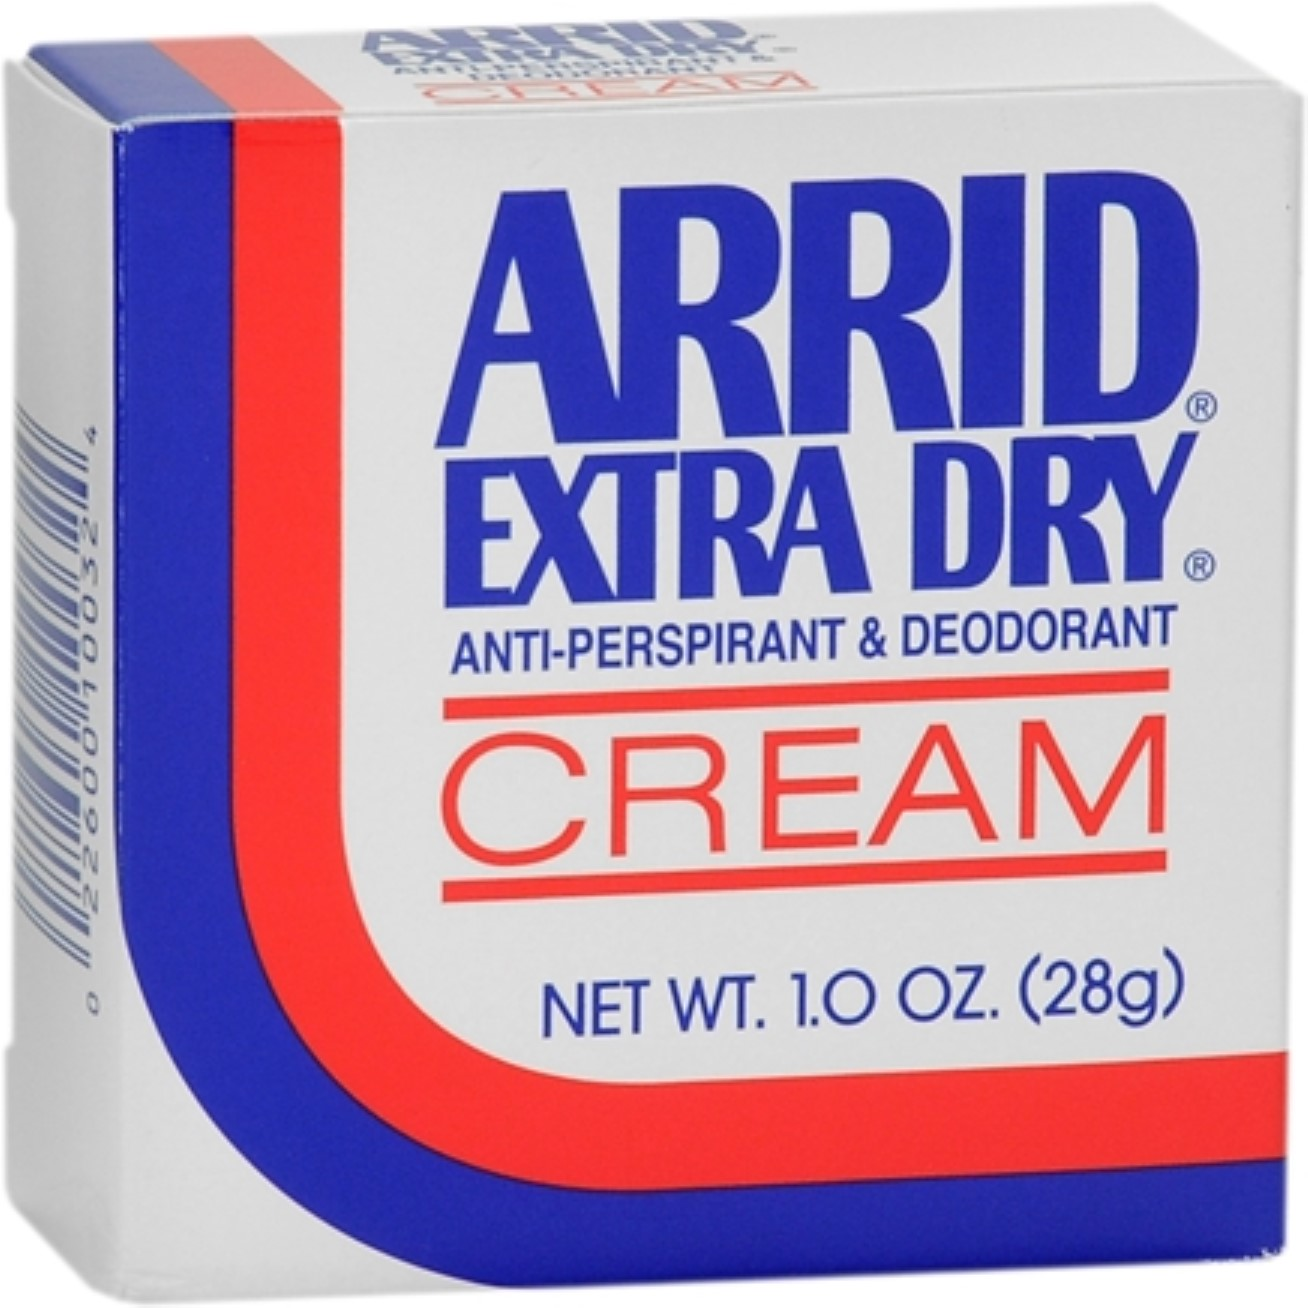 Extra Dry Anti-Perspirant and Deodorant Cream by Arrid, 1 Ounce